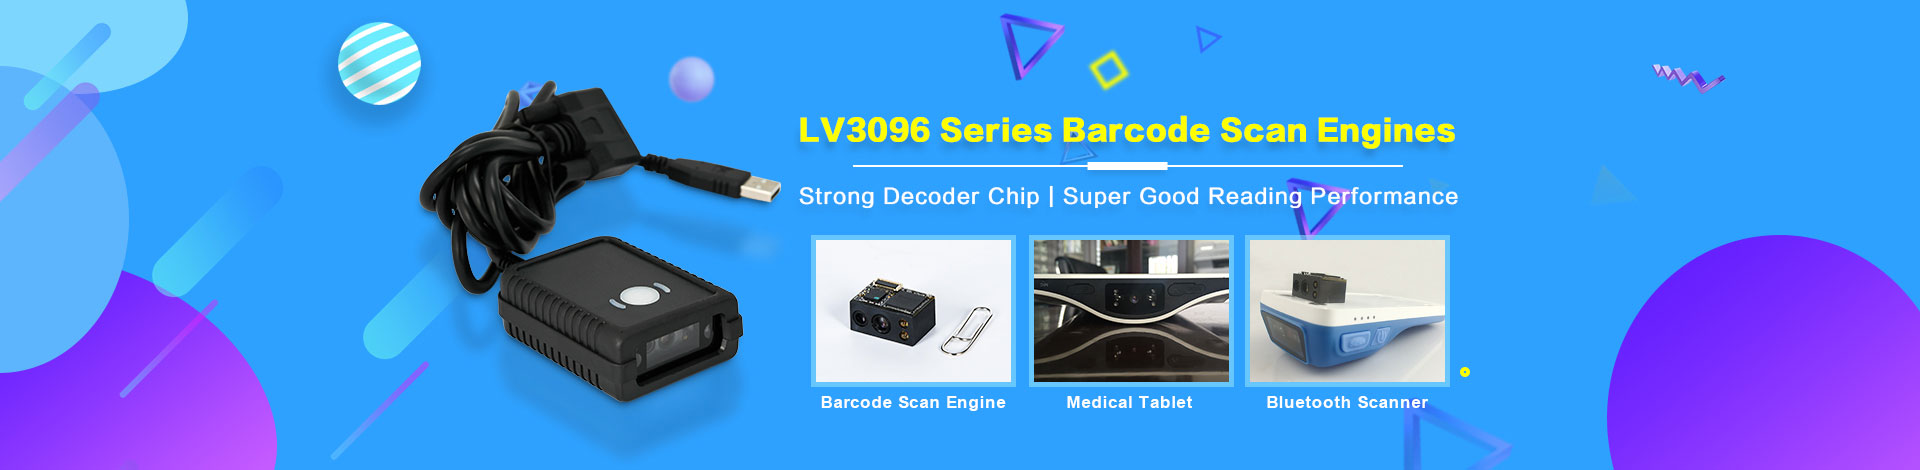 lv3096 series barcode scan engine